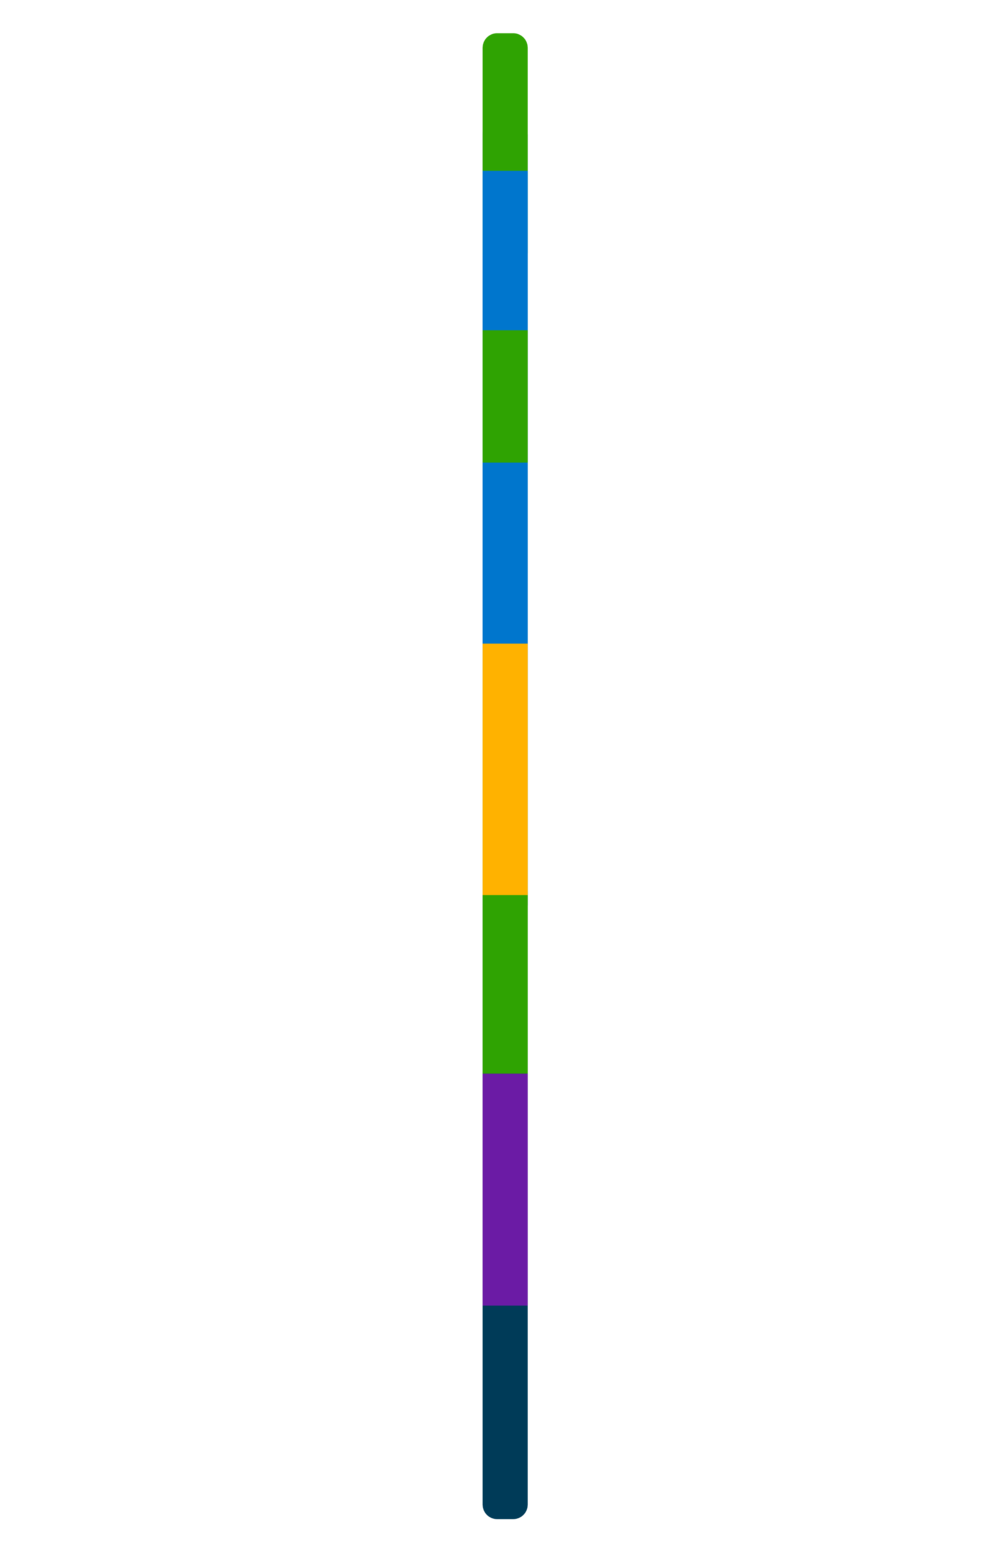 Unisus-International-School-Daily-Schedule-Updated.png